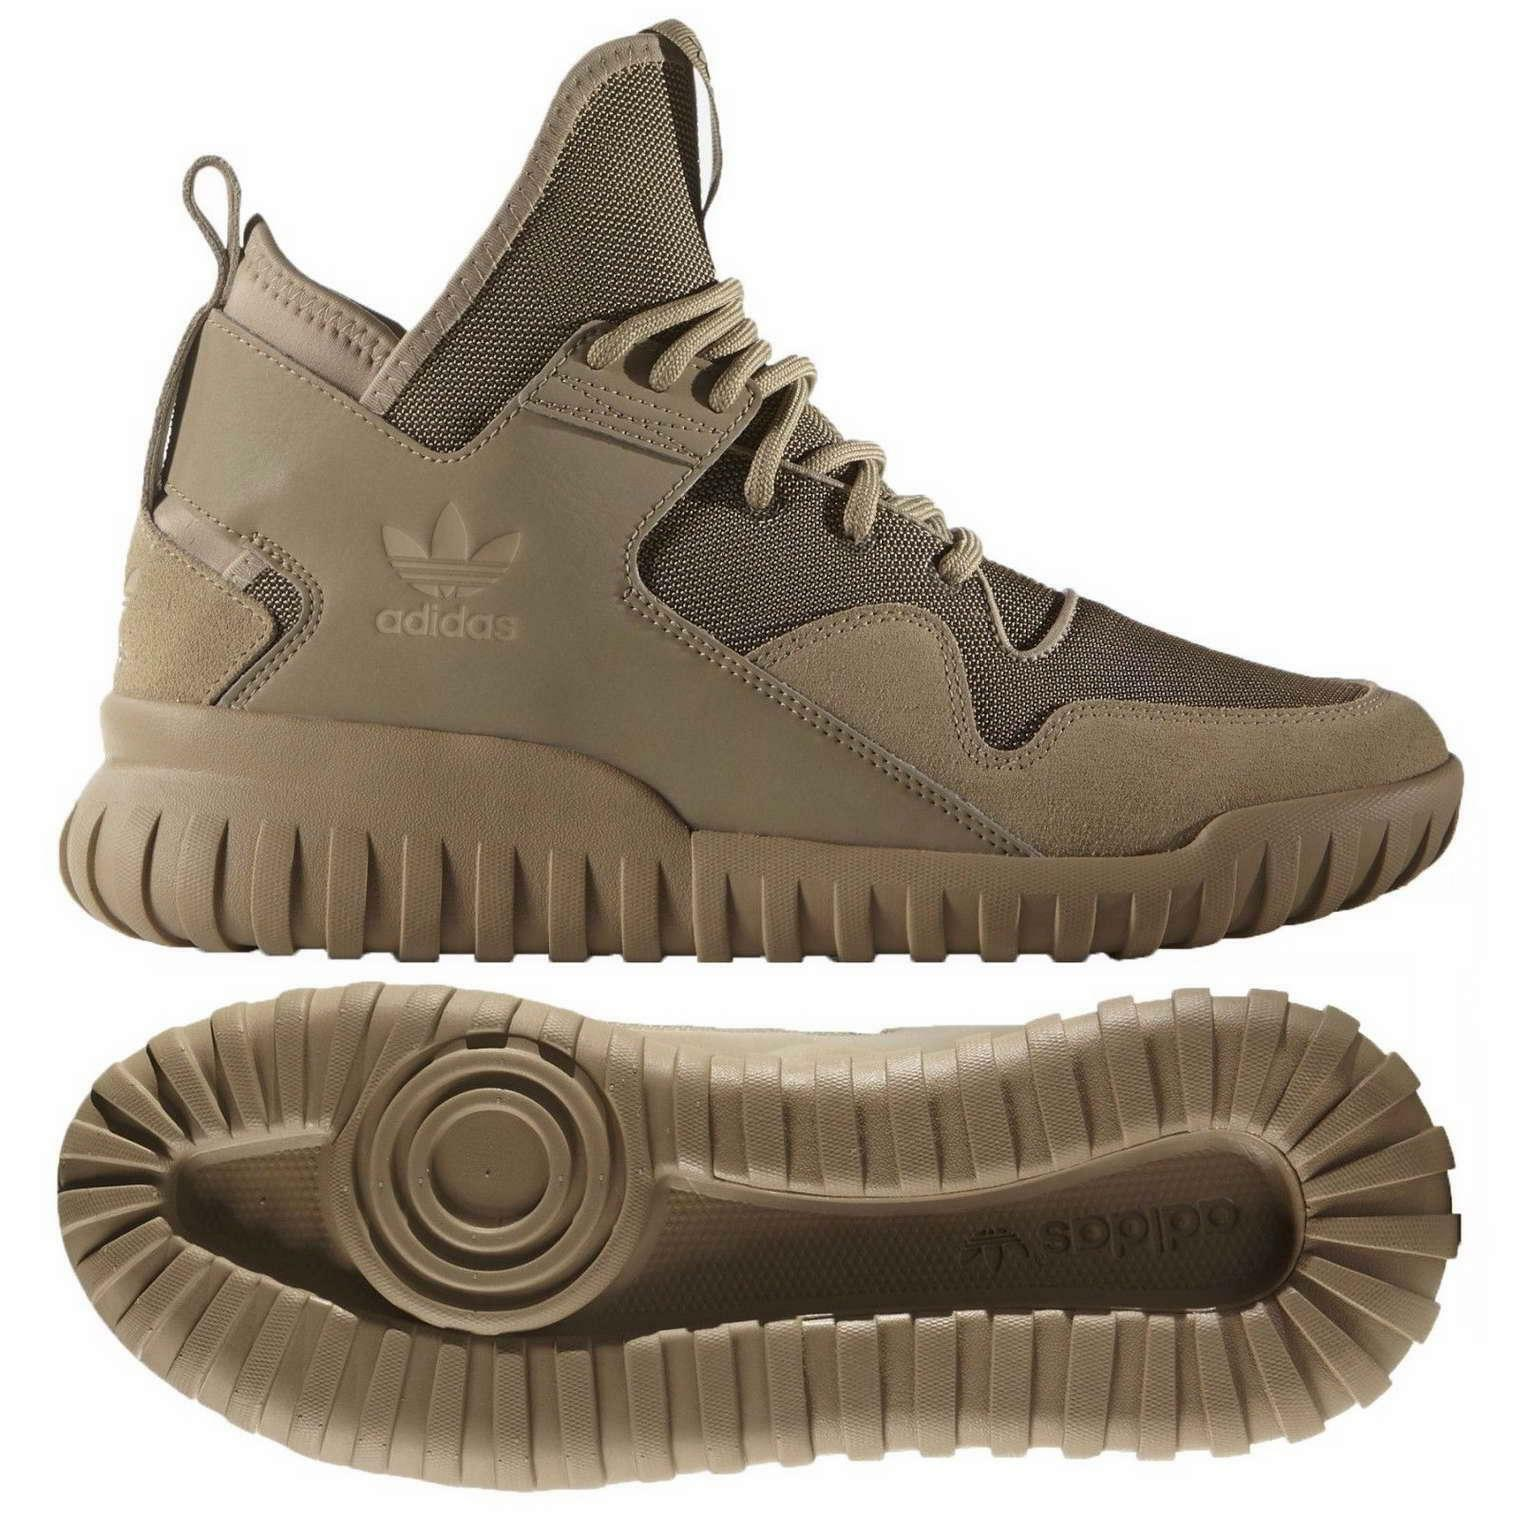 Adidas Originals Women's Tubular X Hemp Trainers Unisex